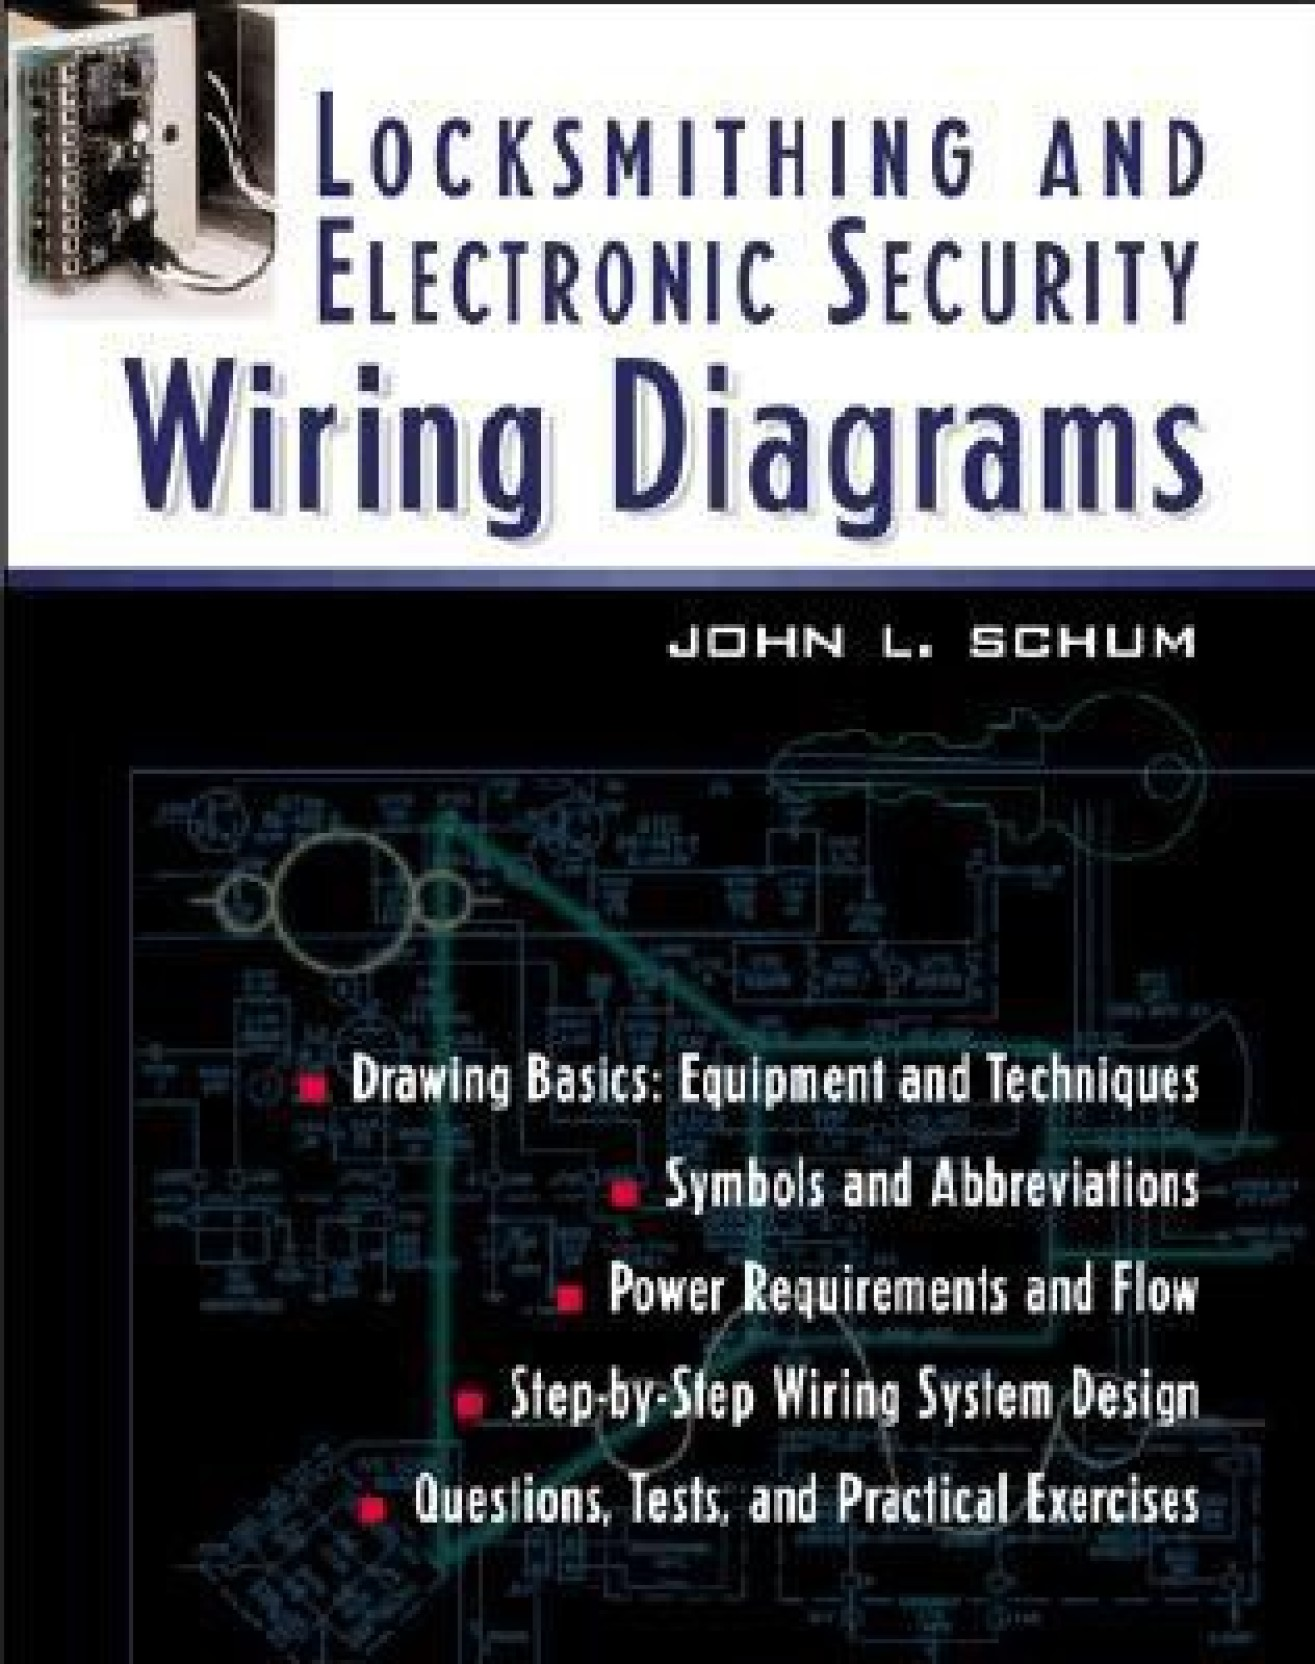 Locksmithing And Electronic Security Wiring Diagrams Buy Electronics Circuits Symbols Standardized Diagram Schematic Add To Cart